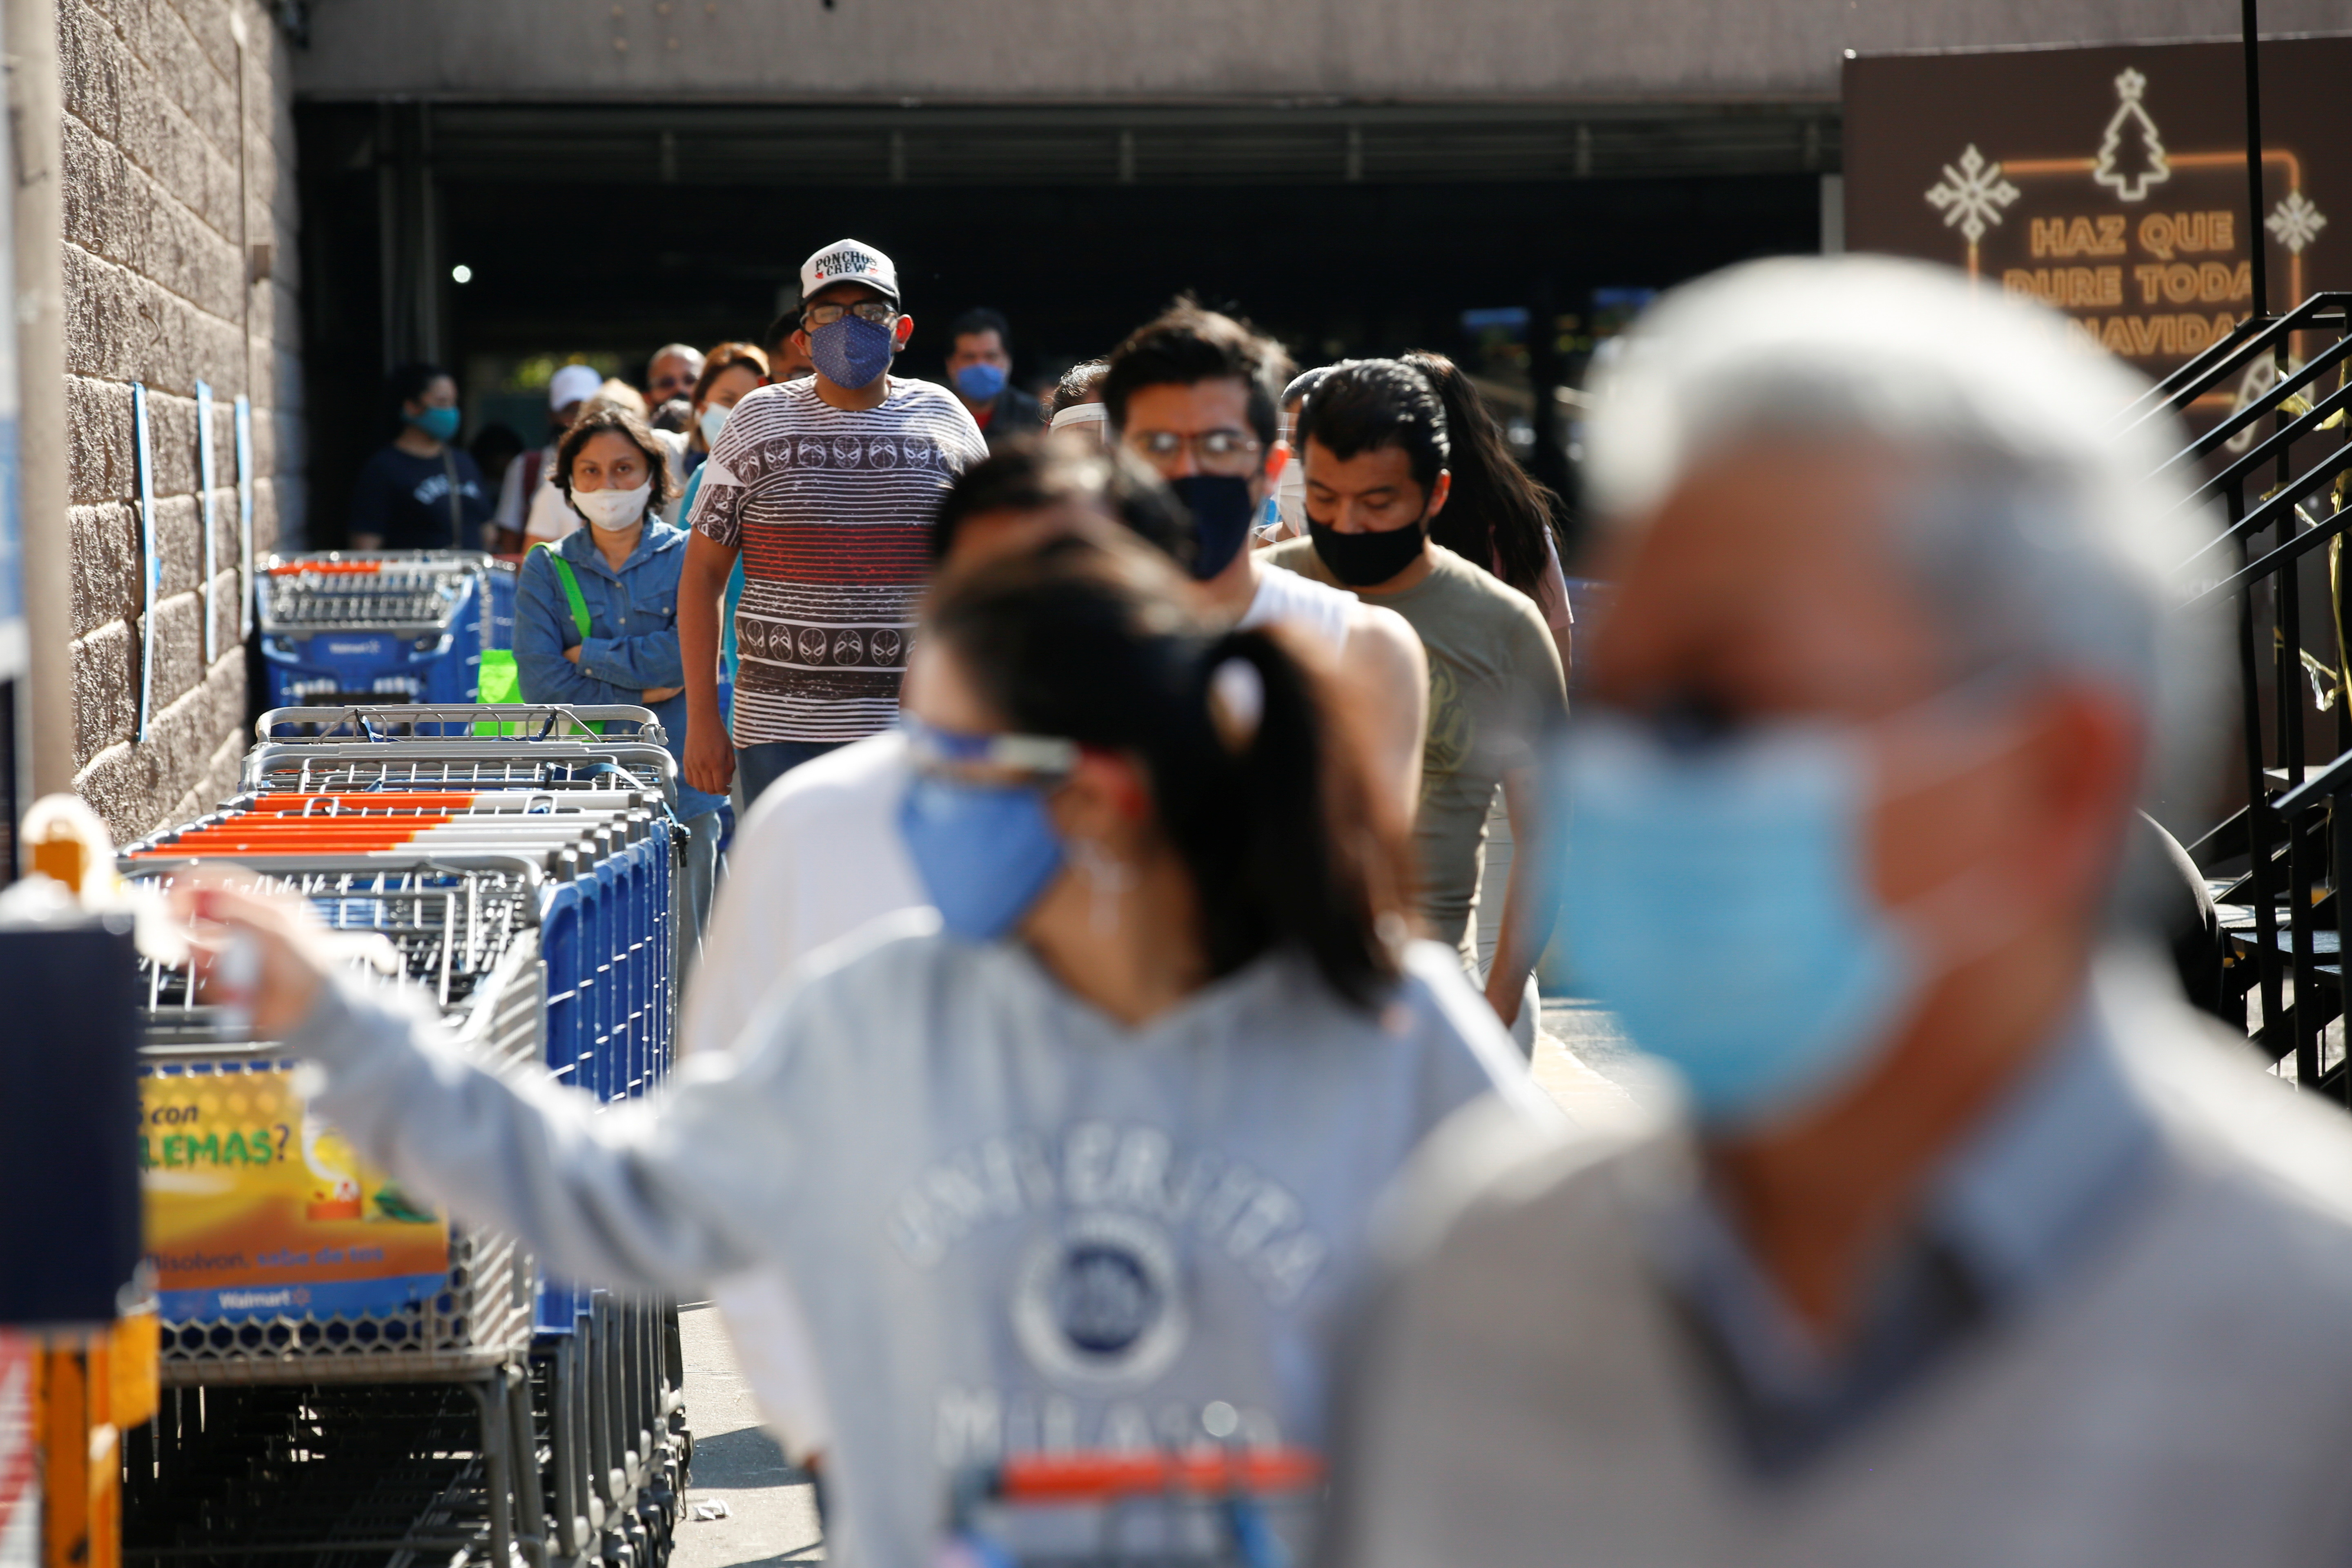 People shopping with masks on during the COVID-19 pandemic